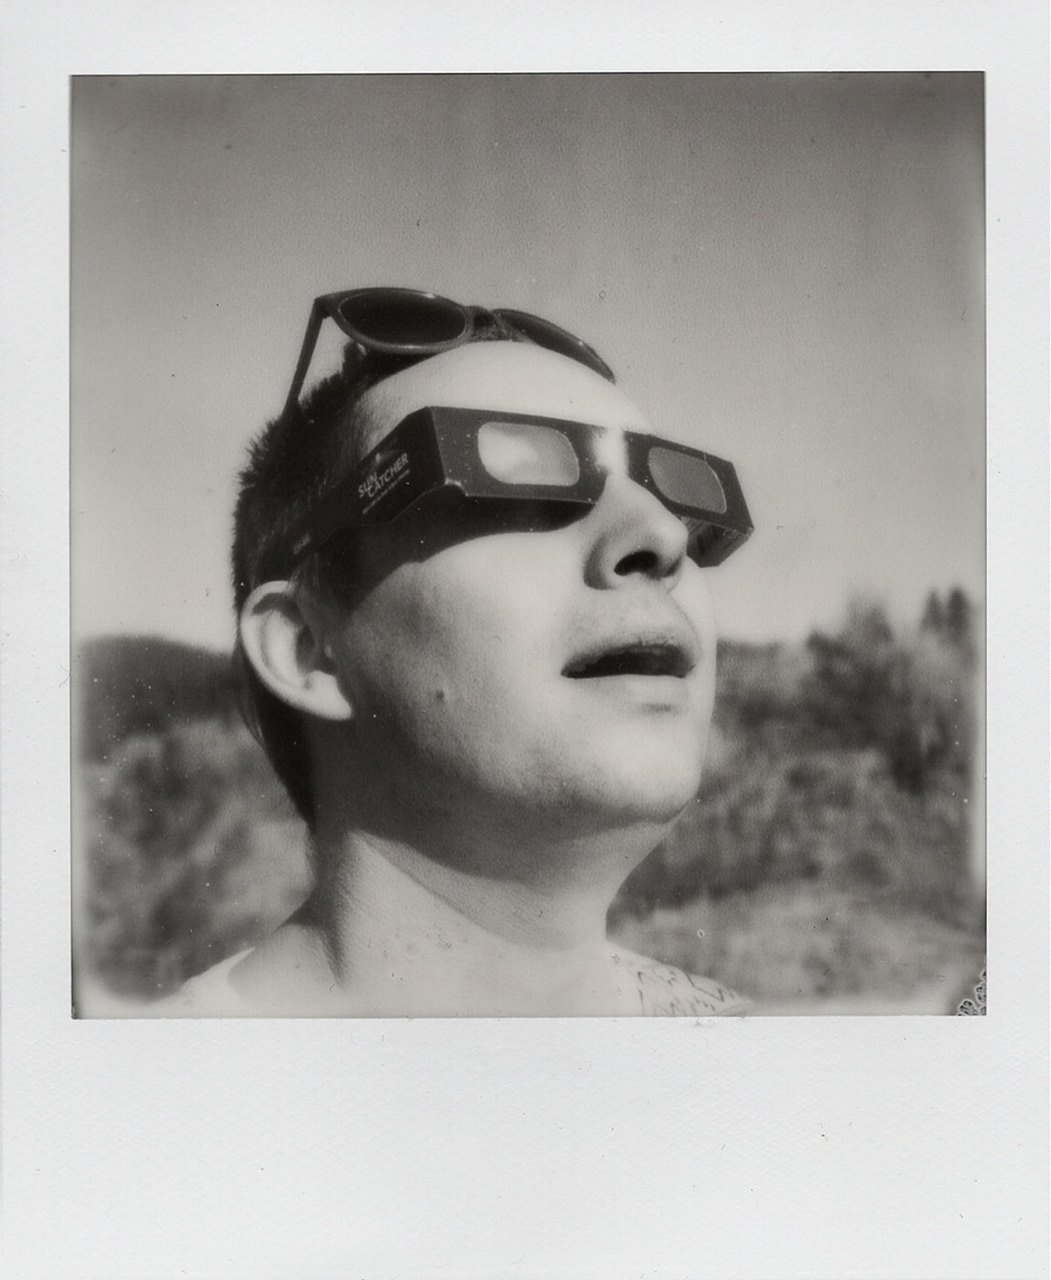 SX-70 Format Black & White Film